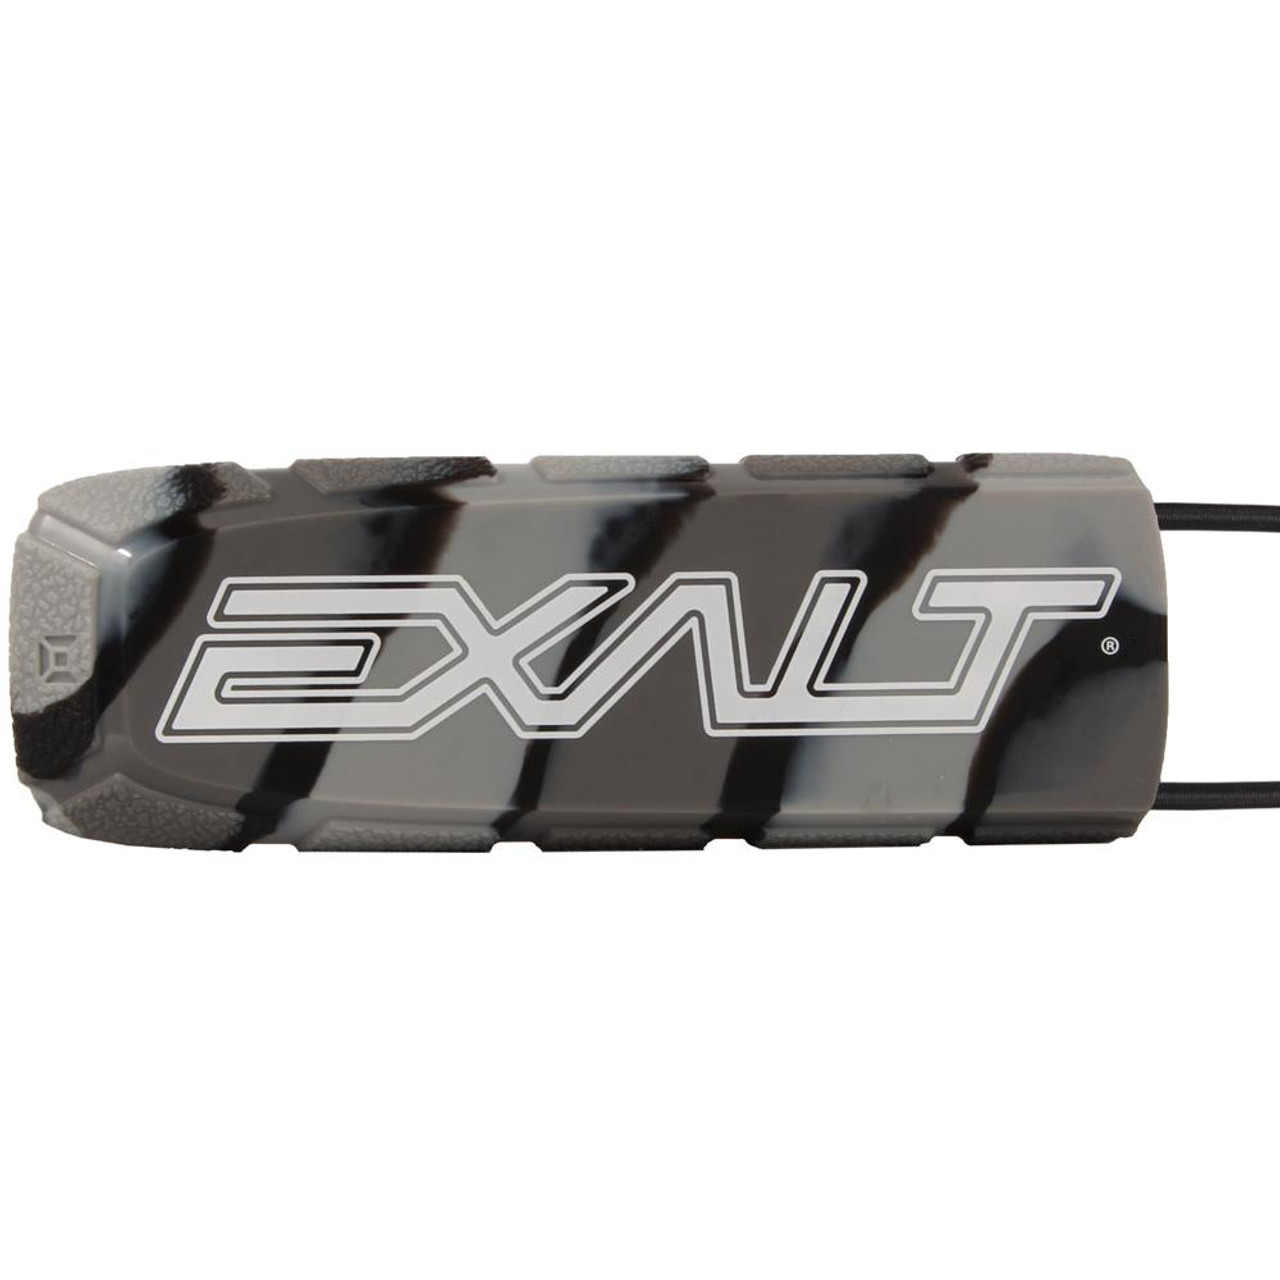 Exalt Bayonet Barrel Cover Charcoal Swirl